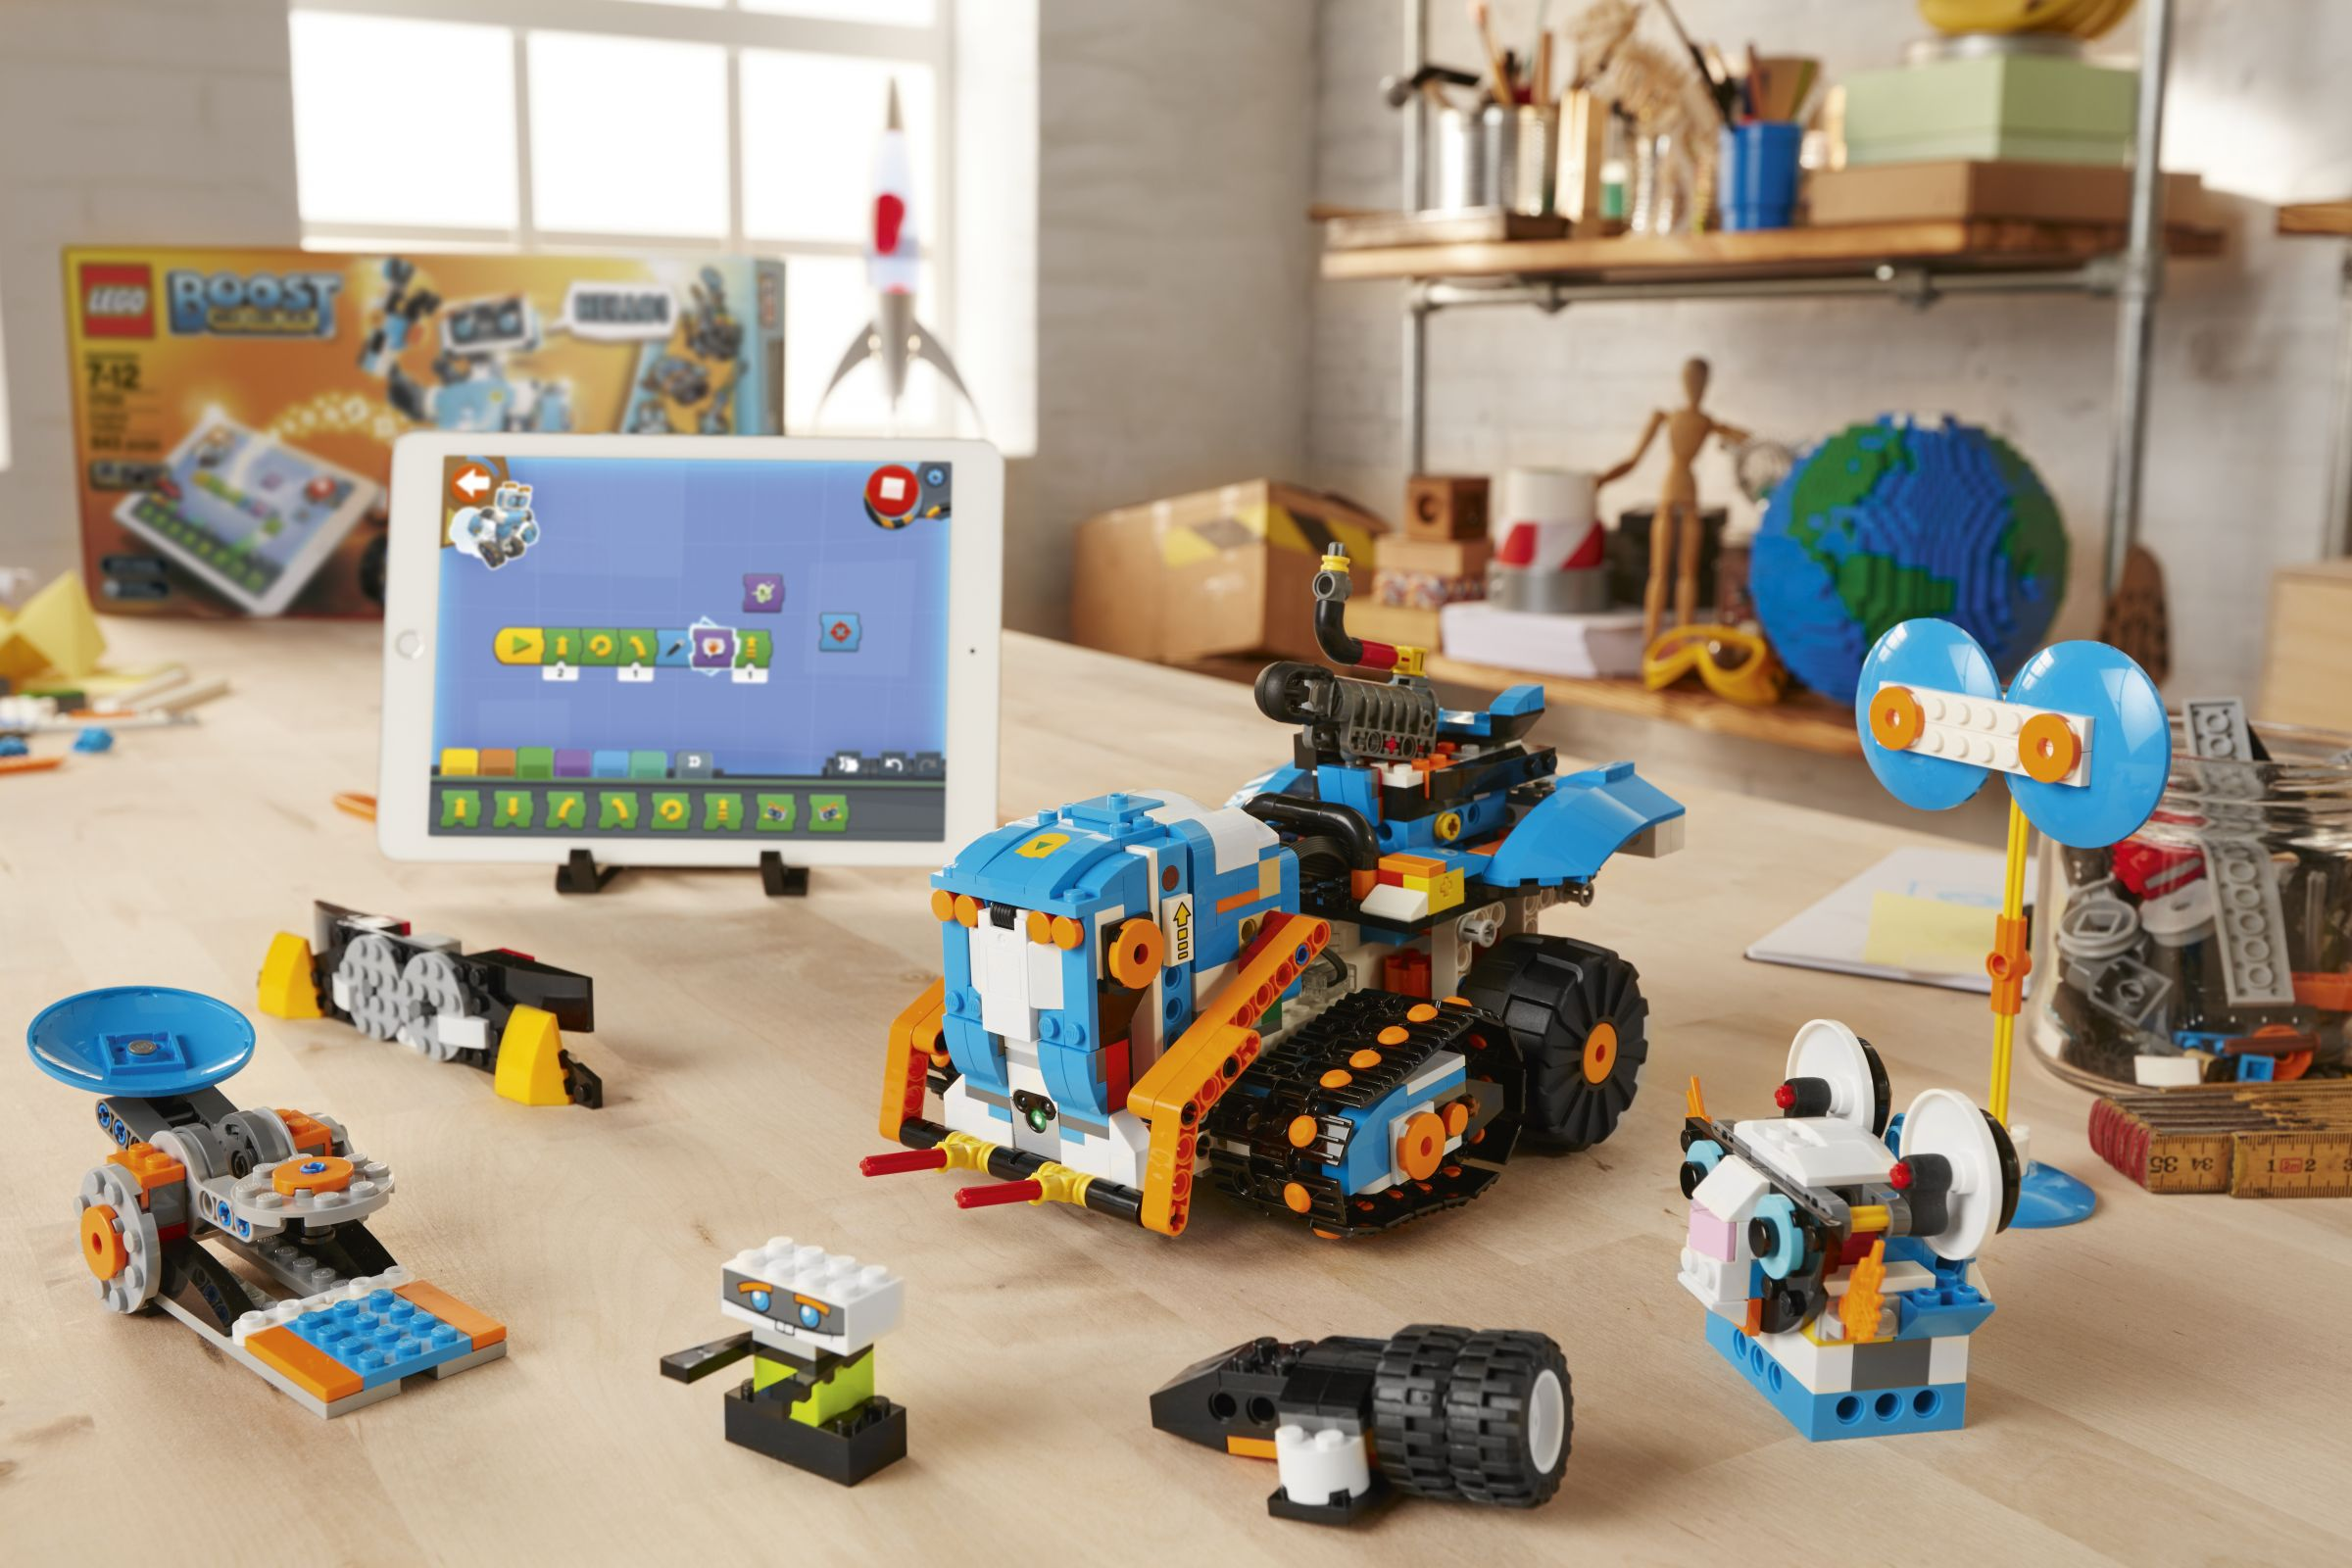 LEGO BOOST 17101 Creative Toolbox LEGO_BOOST_MTR_ALONE_V025 2.jpg